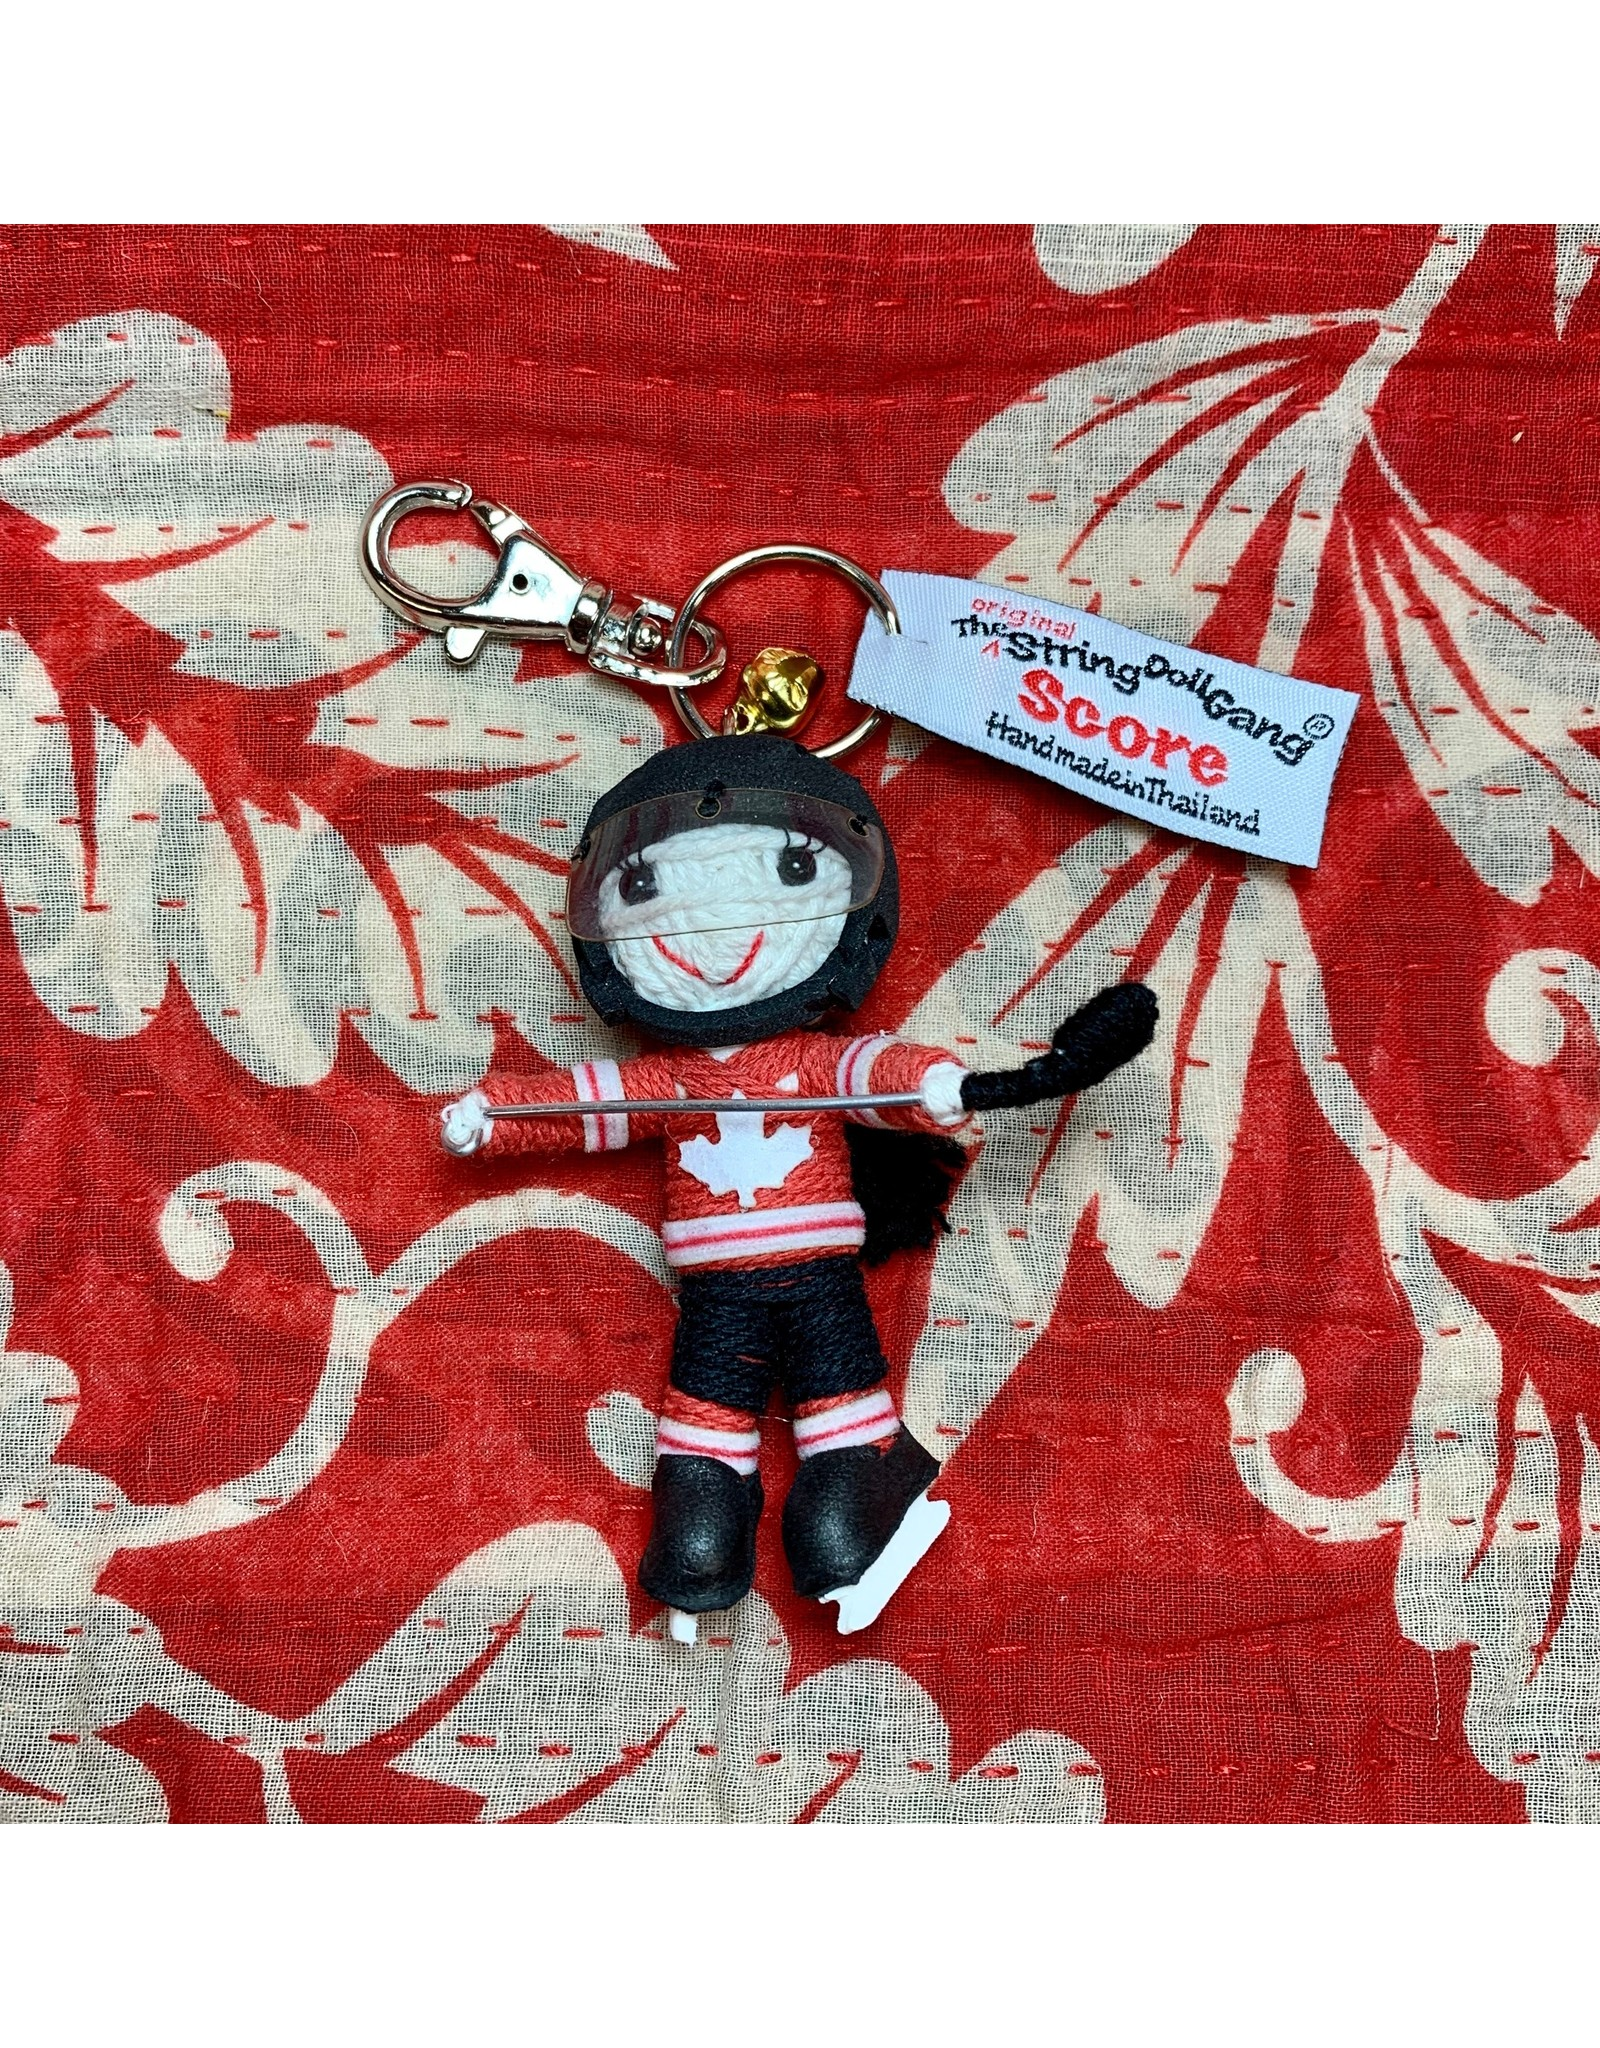 Ten Thousand Villages CLEARANCE Team Canada Hockey Player Keychain (with braid)